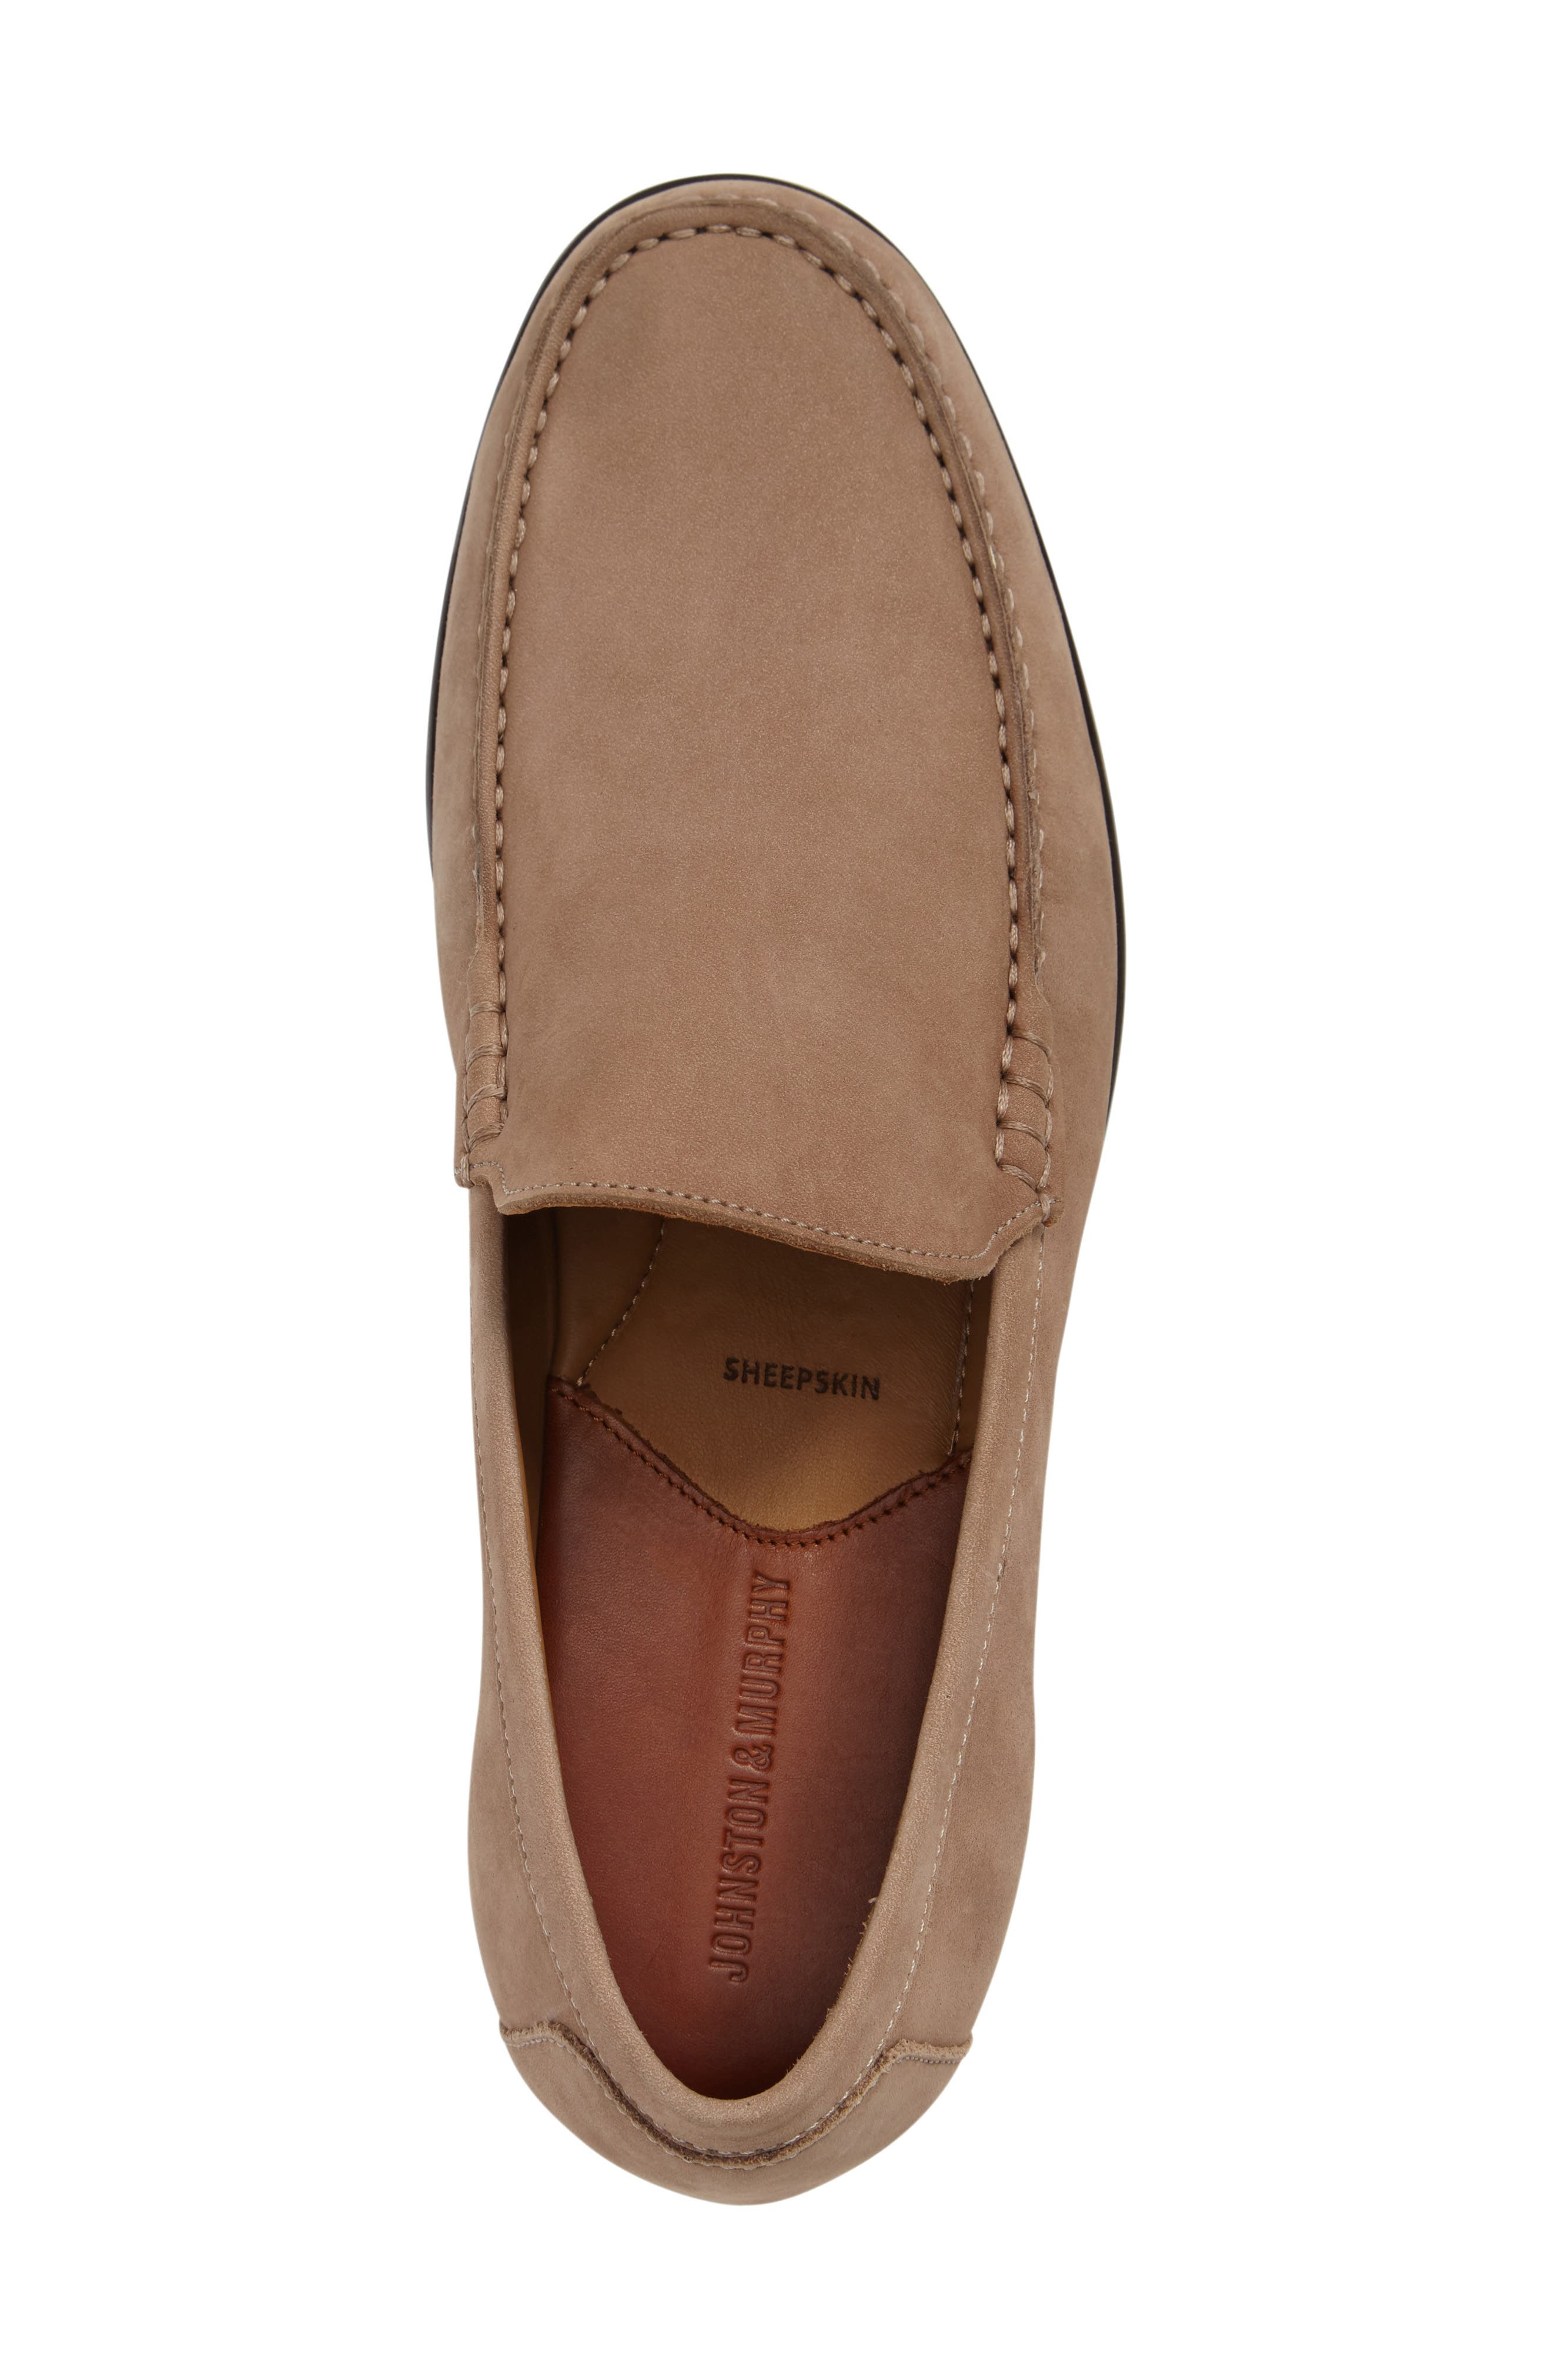 Cresswell Venetian Loafer,                             Alternate thumbnail 3, color,                             Sand Nubuck Leather